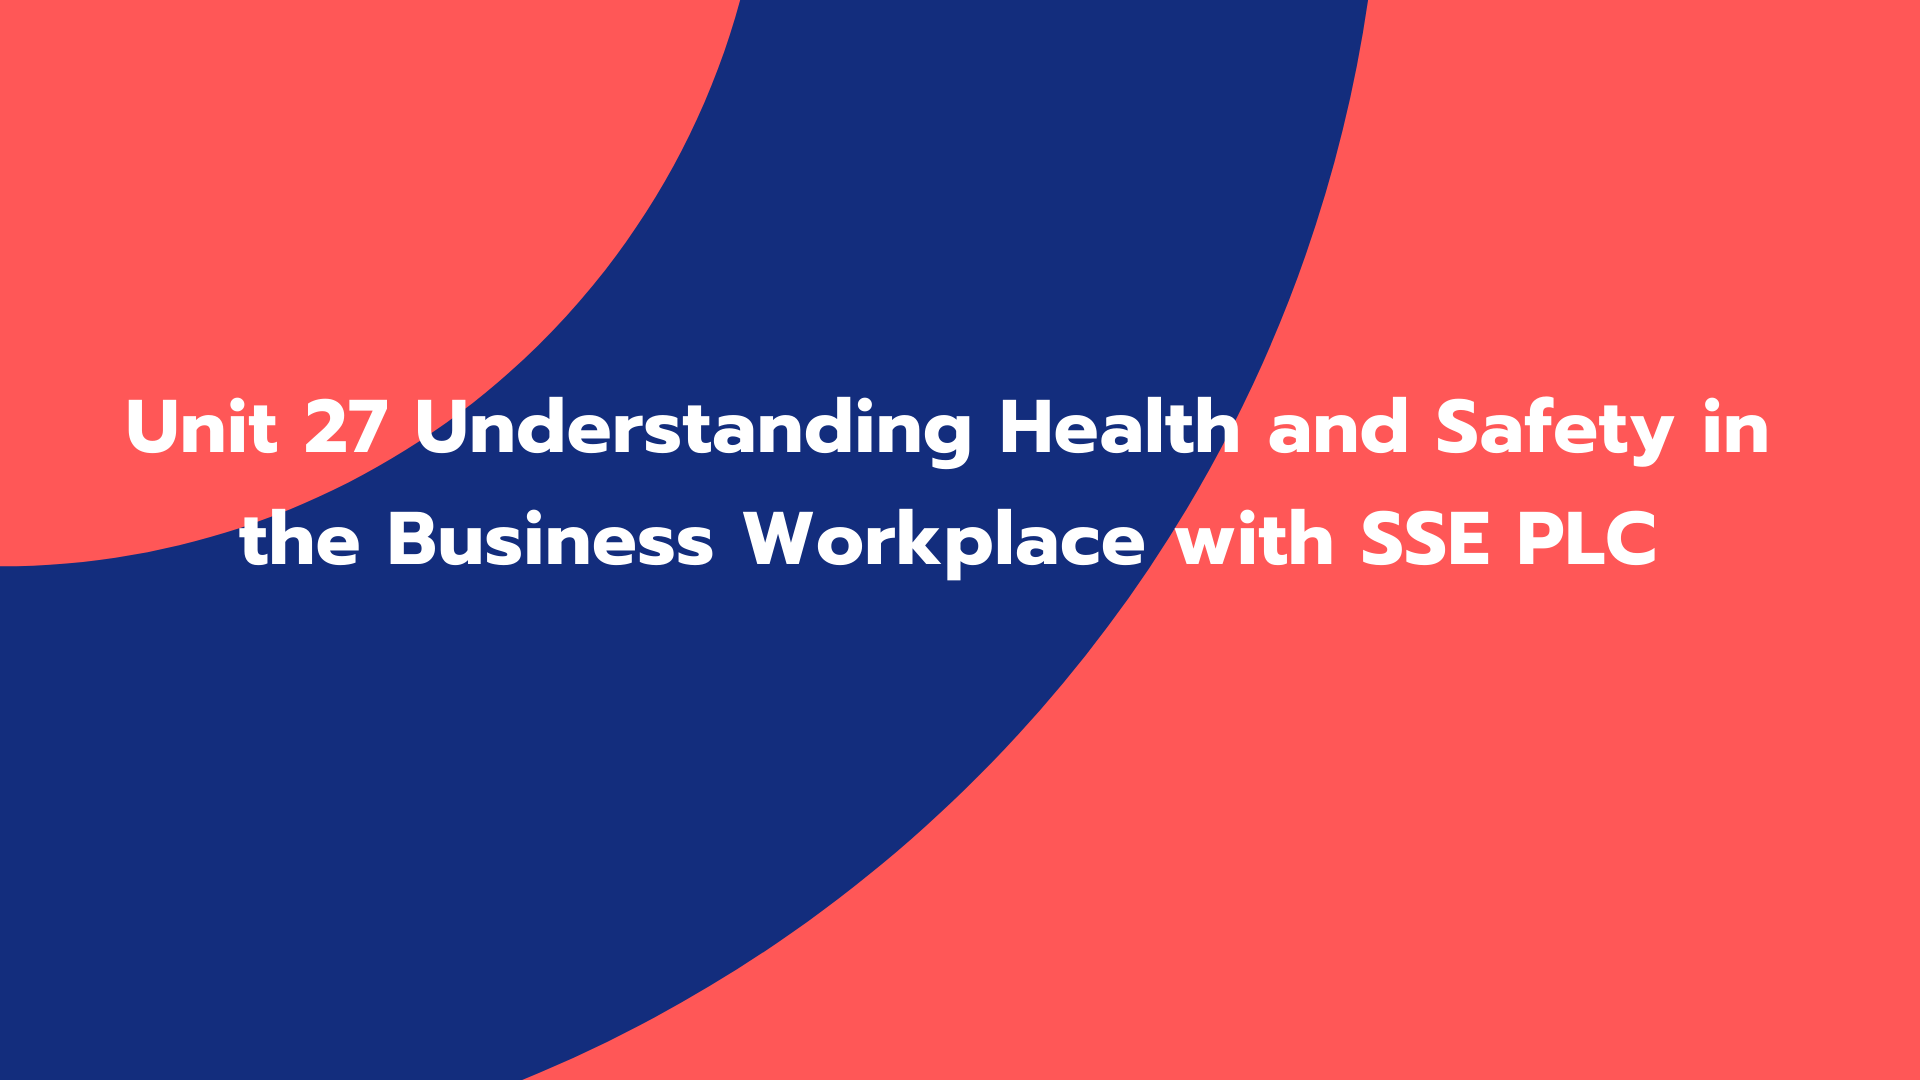 Unit 27 Understanding Health and Safety in the Business Workplace with SSE PLC